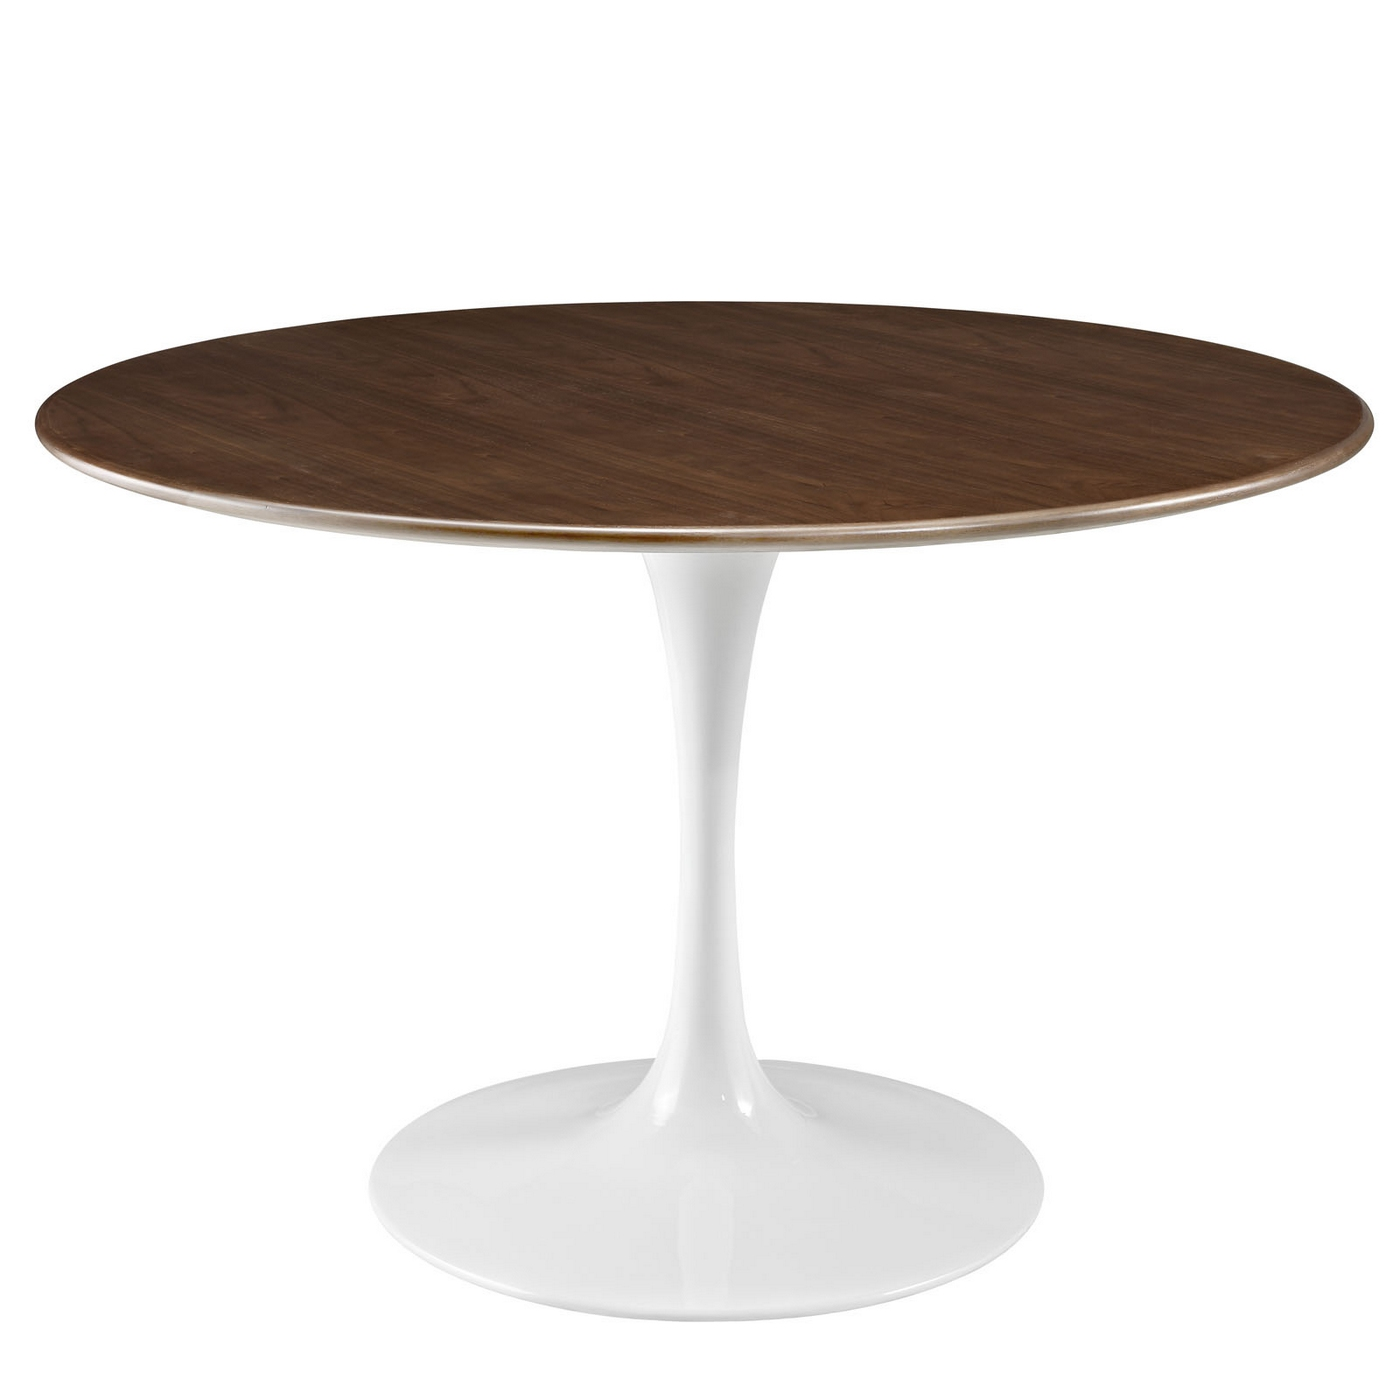 Lippa 47quot Round Walnut Top Dining Table With Lacquered  : lippa 47 round walnut top dining table with lacquered finished base walnut 14 from shopfactorydirect.com size 1400 x 1400 jpeg 177kB